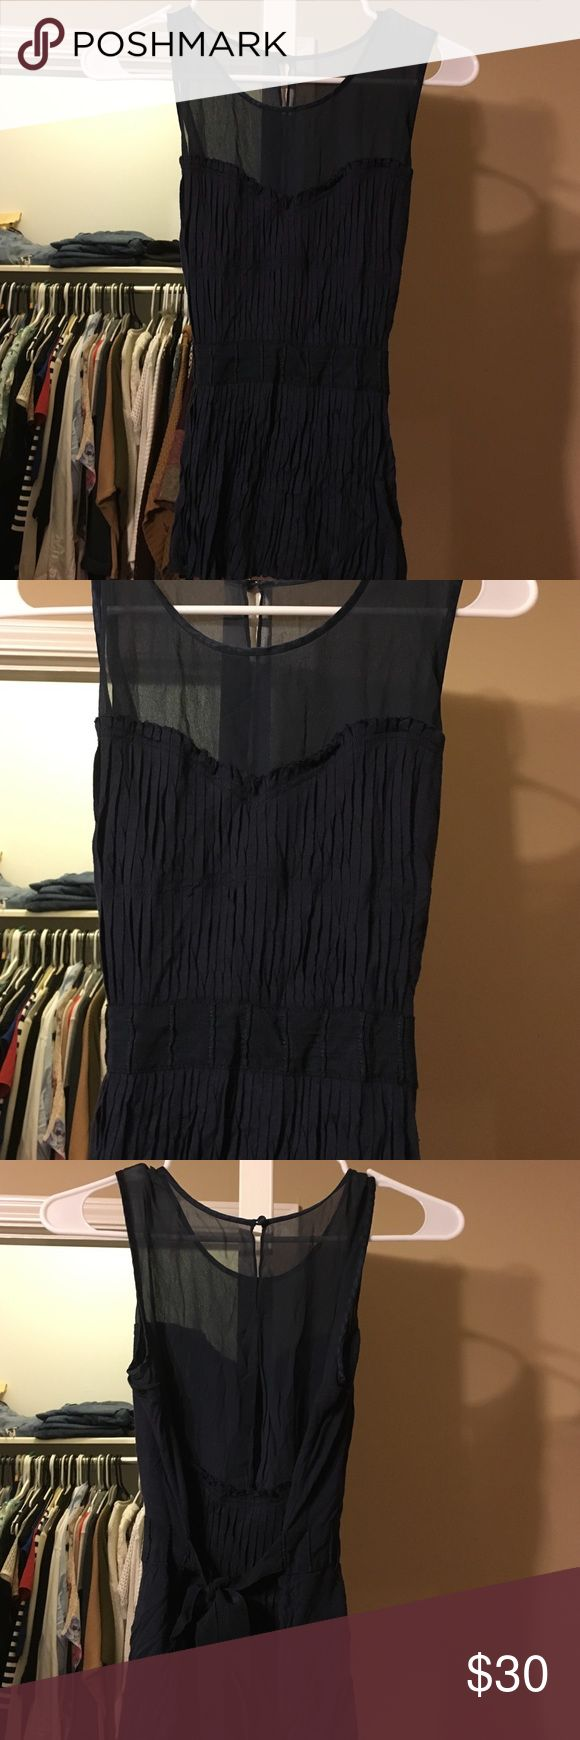 Bcbgmaxazria top Beautiful top with yolk lining and silk, ties in the back BCBGMaxAzria Tops Blouses